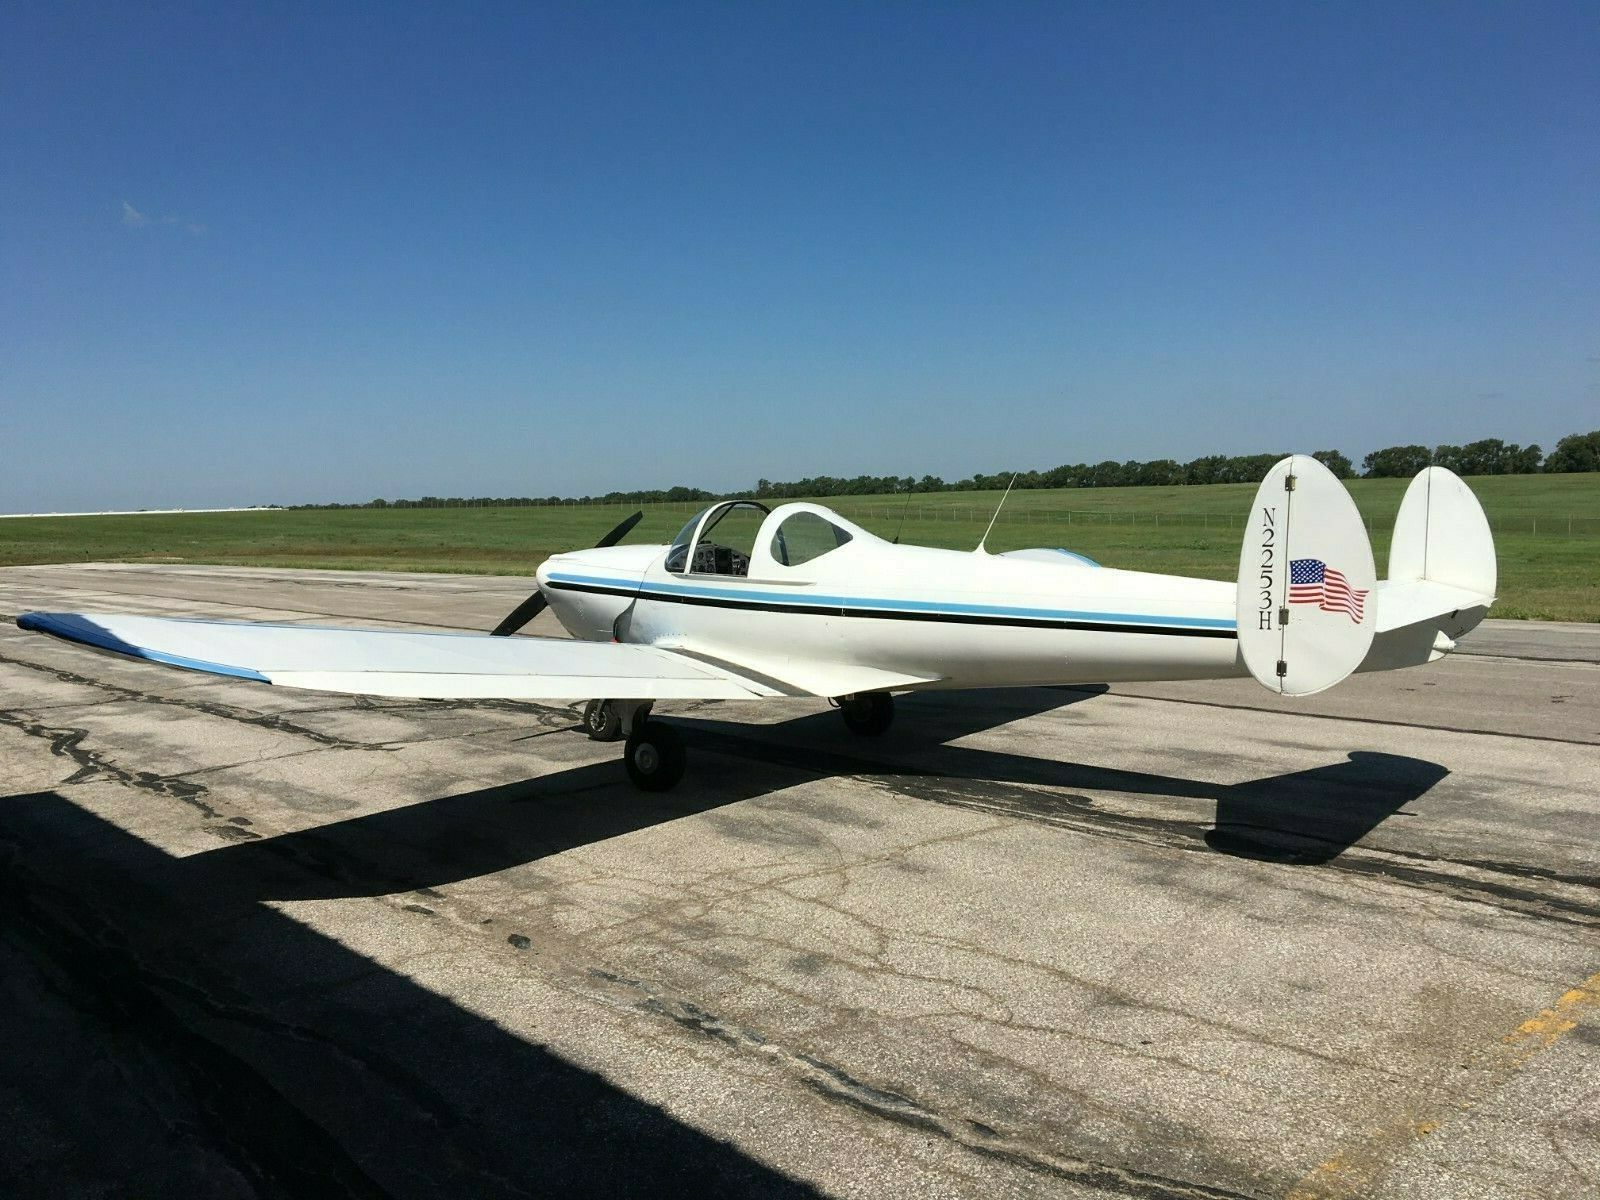 vintage 1946 Ercoupe 415C Light Sport aircraft